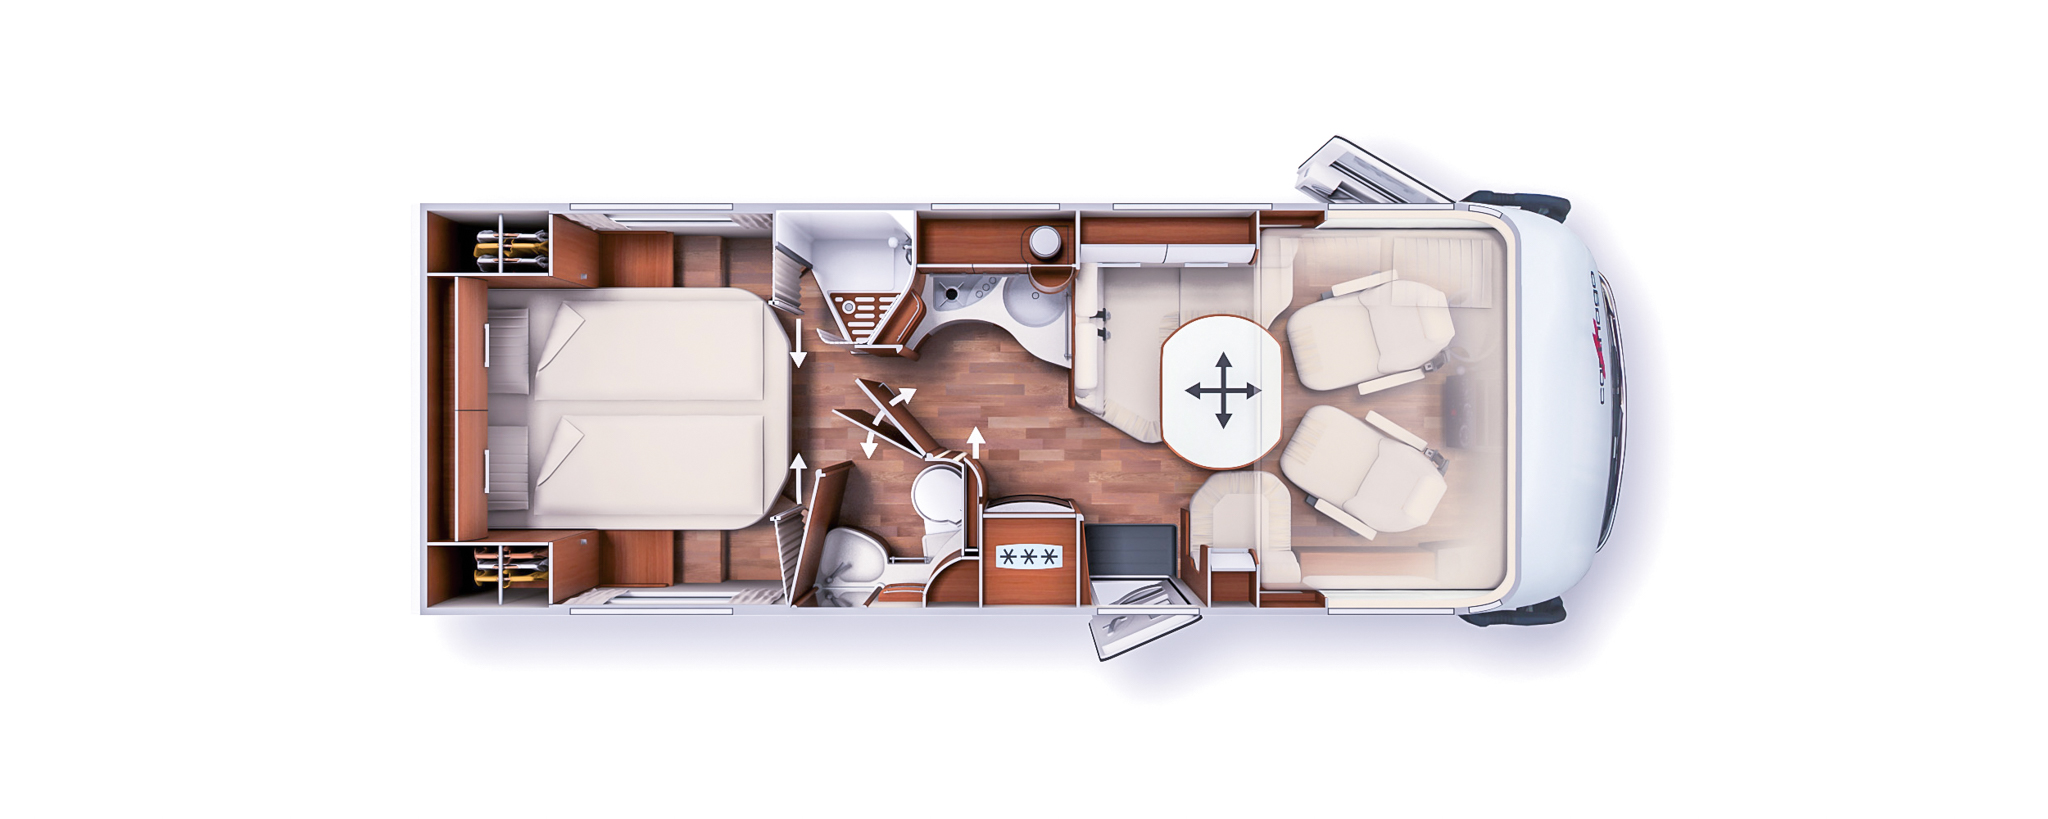 The floor plan for the Carthago chic c-line I 5